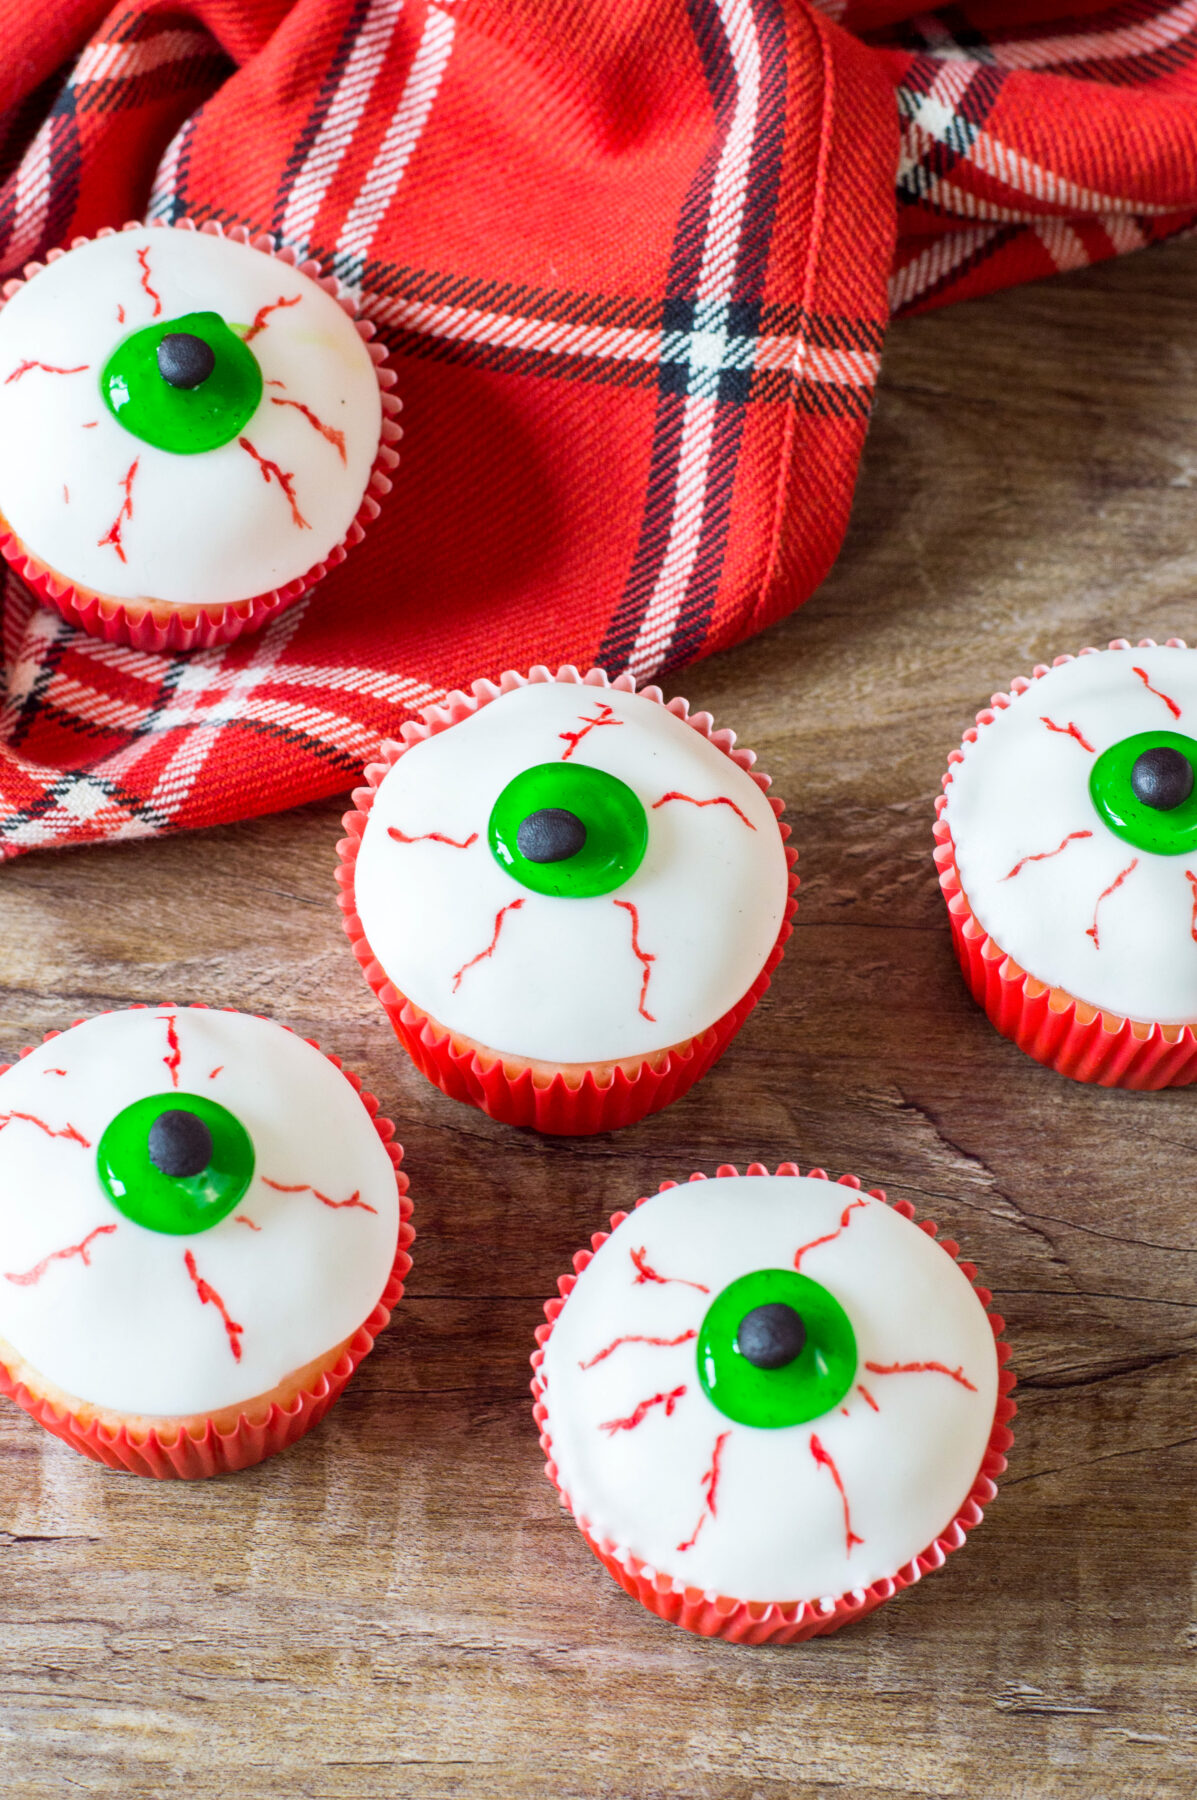 A Halloween party is not complete without these delicious bloodshot eyeball cupcakes. These spooky Halloween cupcakes are made from scratch!